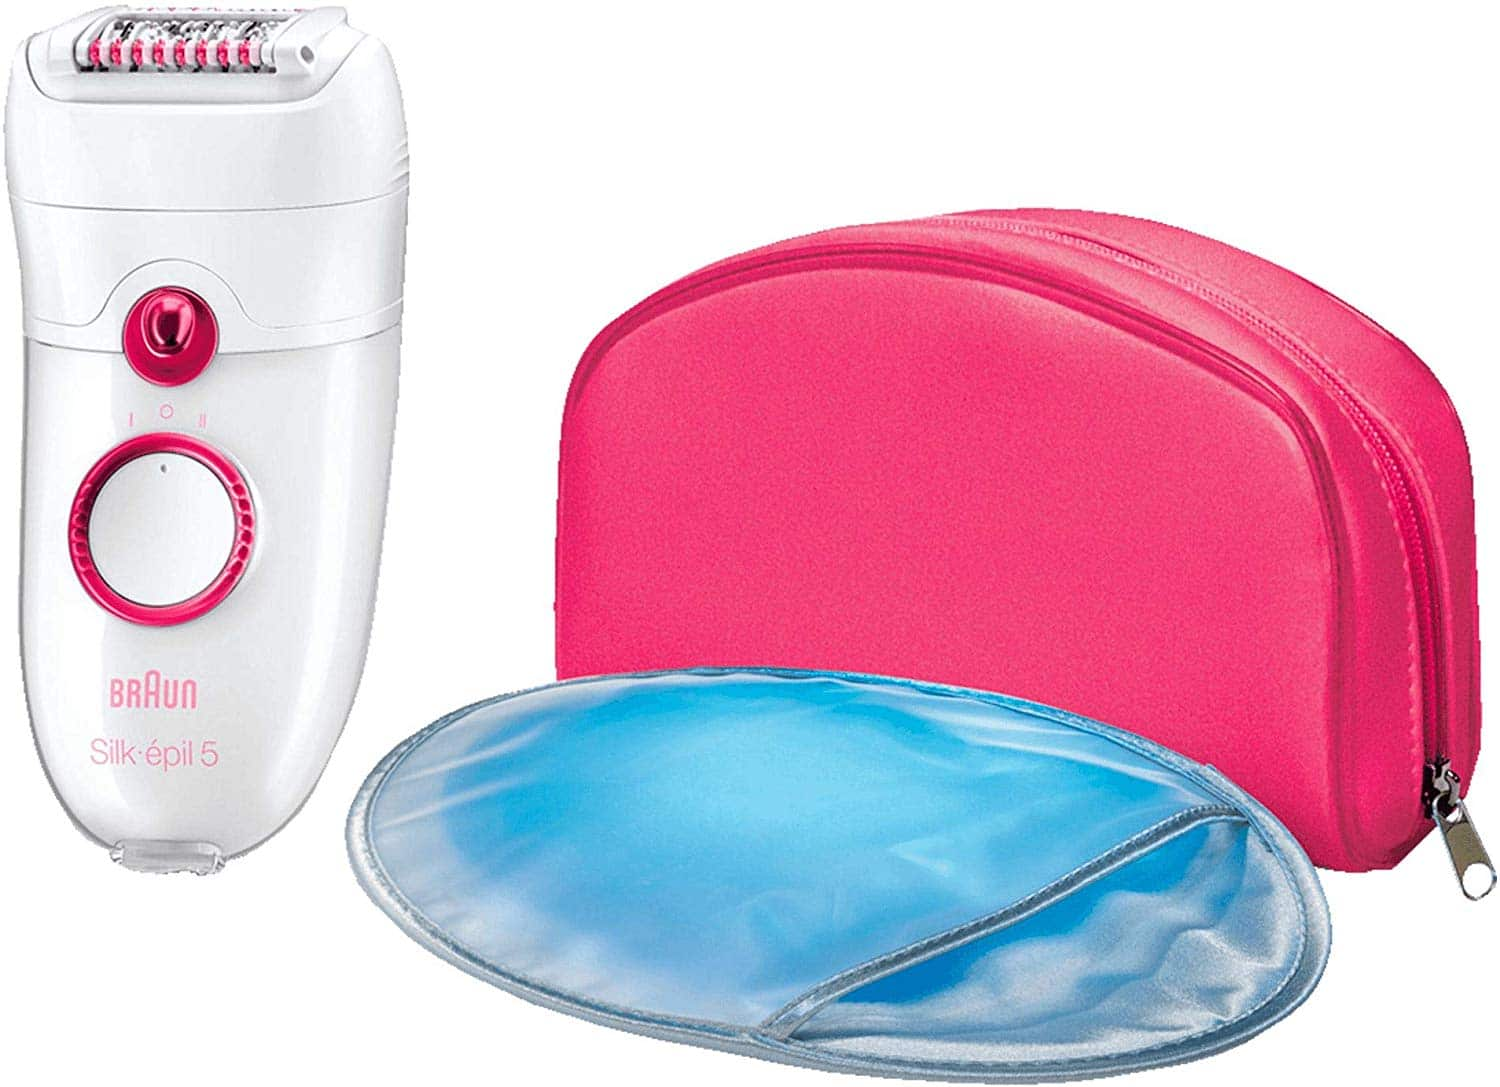 Braun Silk-épil 5 Power 5185 Young Beauty avis